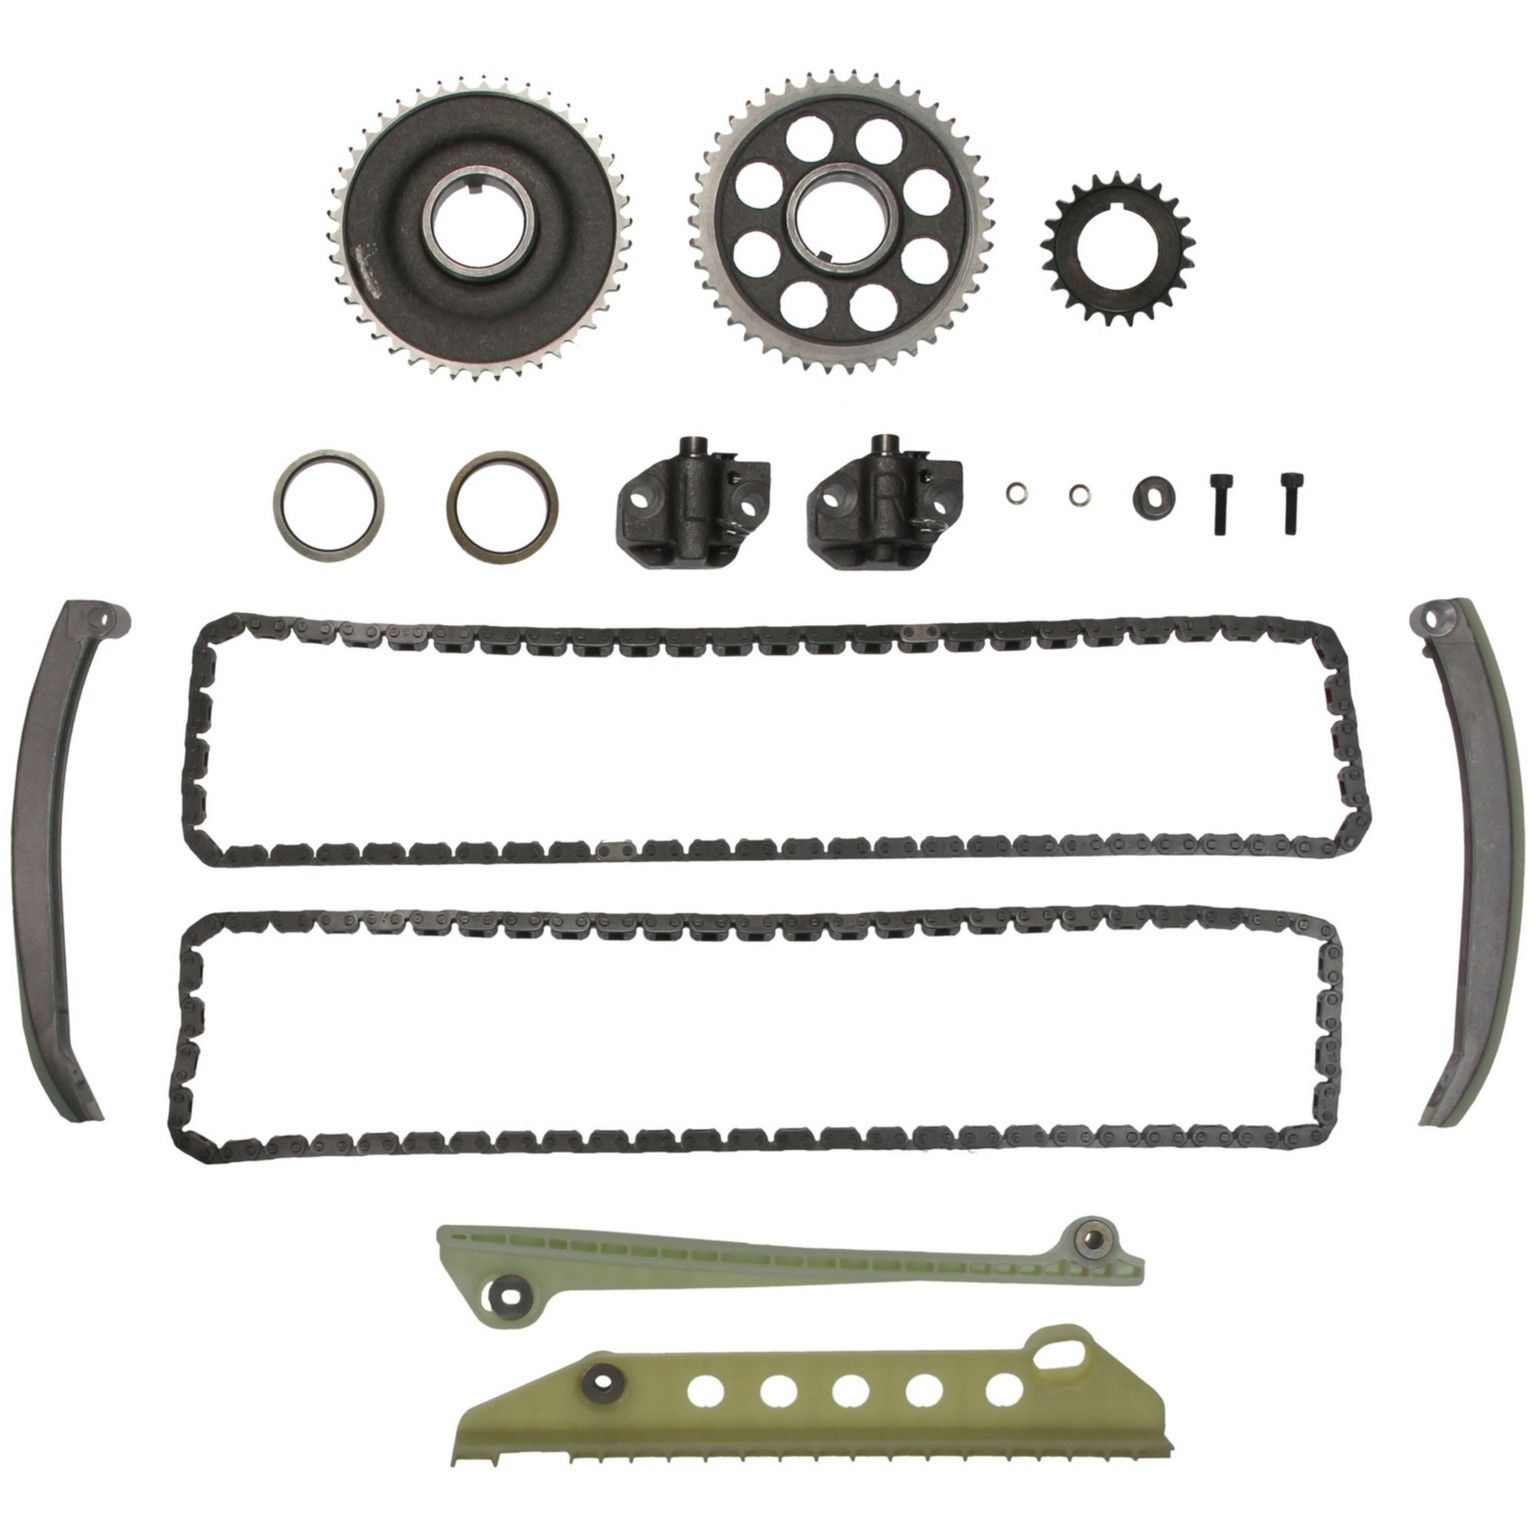 Ford Mustang Engine Timing Set Replacement Cloyes Dj Rock Seal Belt 2001 8 Cyl 46l Sealed Power Kt 4004s Type Complete Includes Sprockets Chains Tensioners Arms Guides